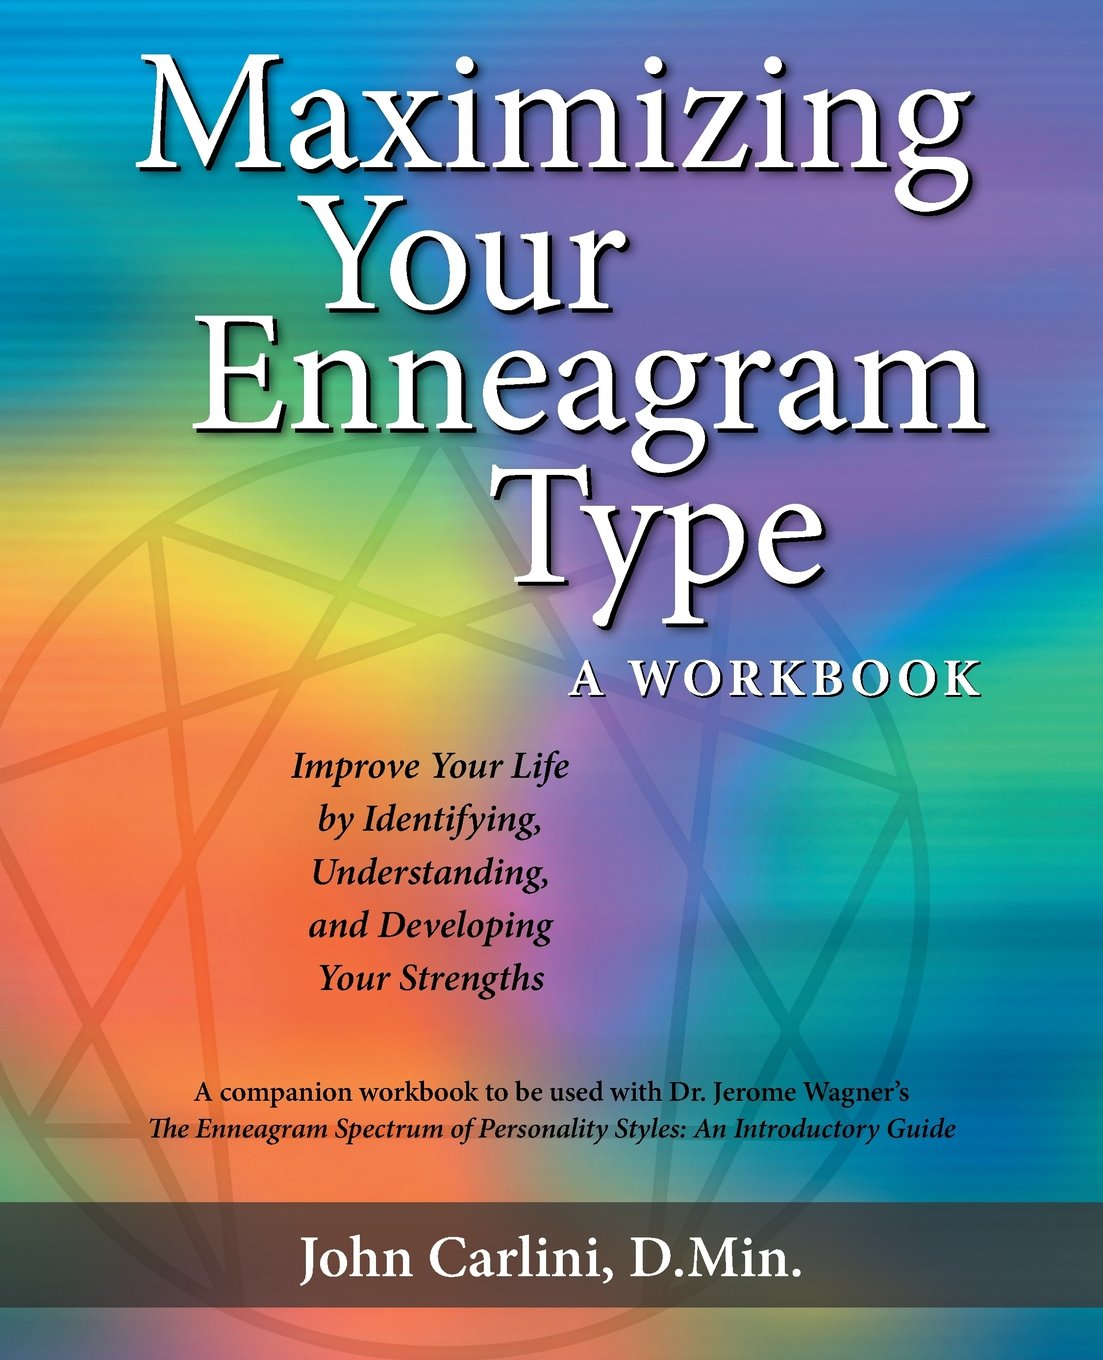 Maximizing Your Enneagram Type a workbook: Improve Your Life by ...